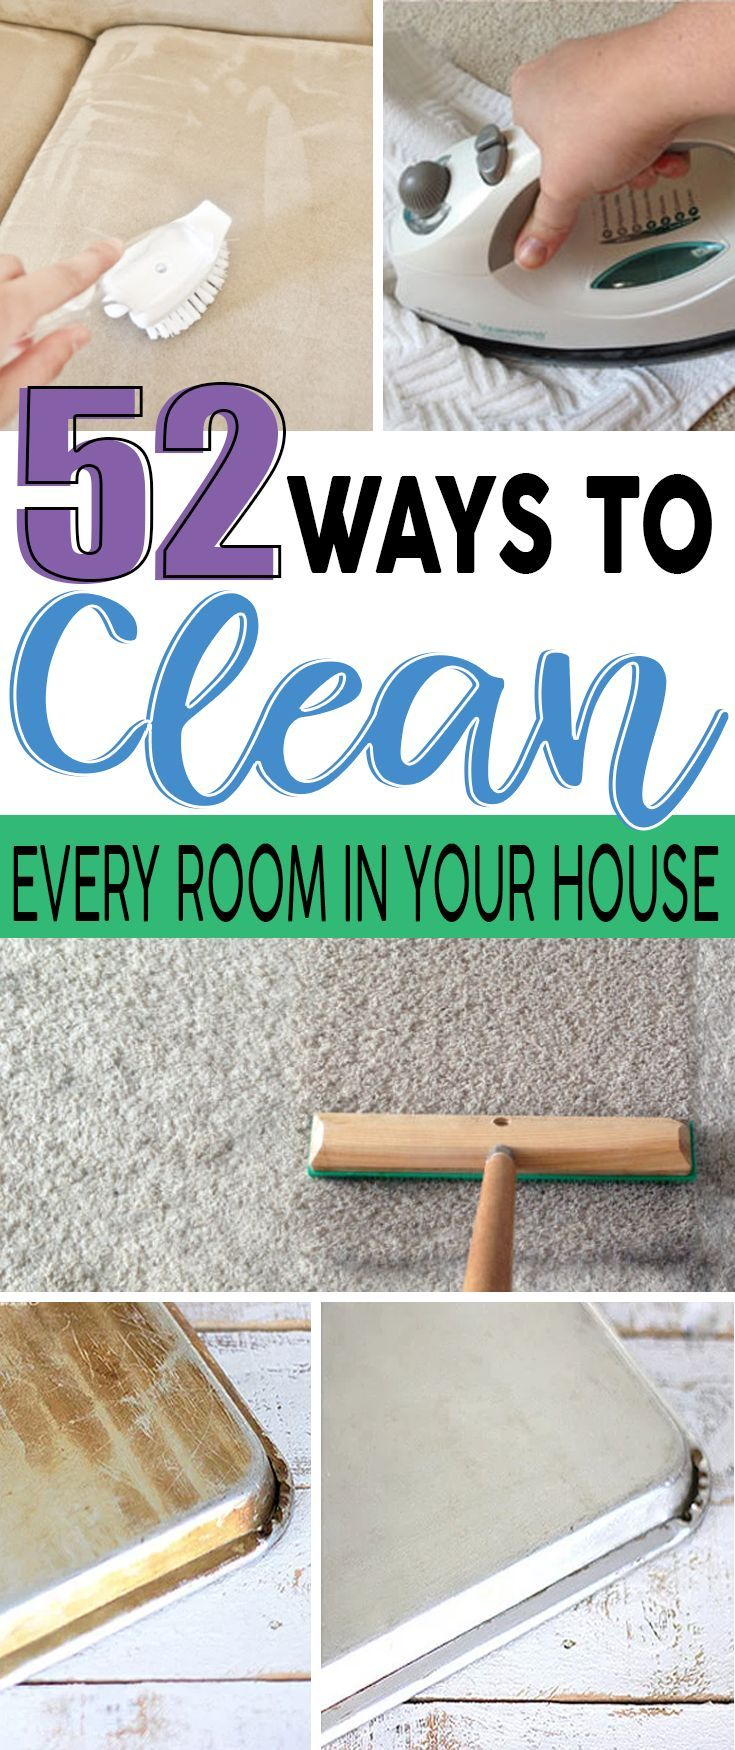 52 Mind Blowing Cleaning Hacks To Keep Your Home Clean — Our Habitat